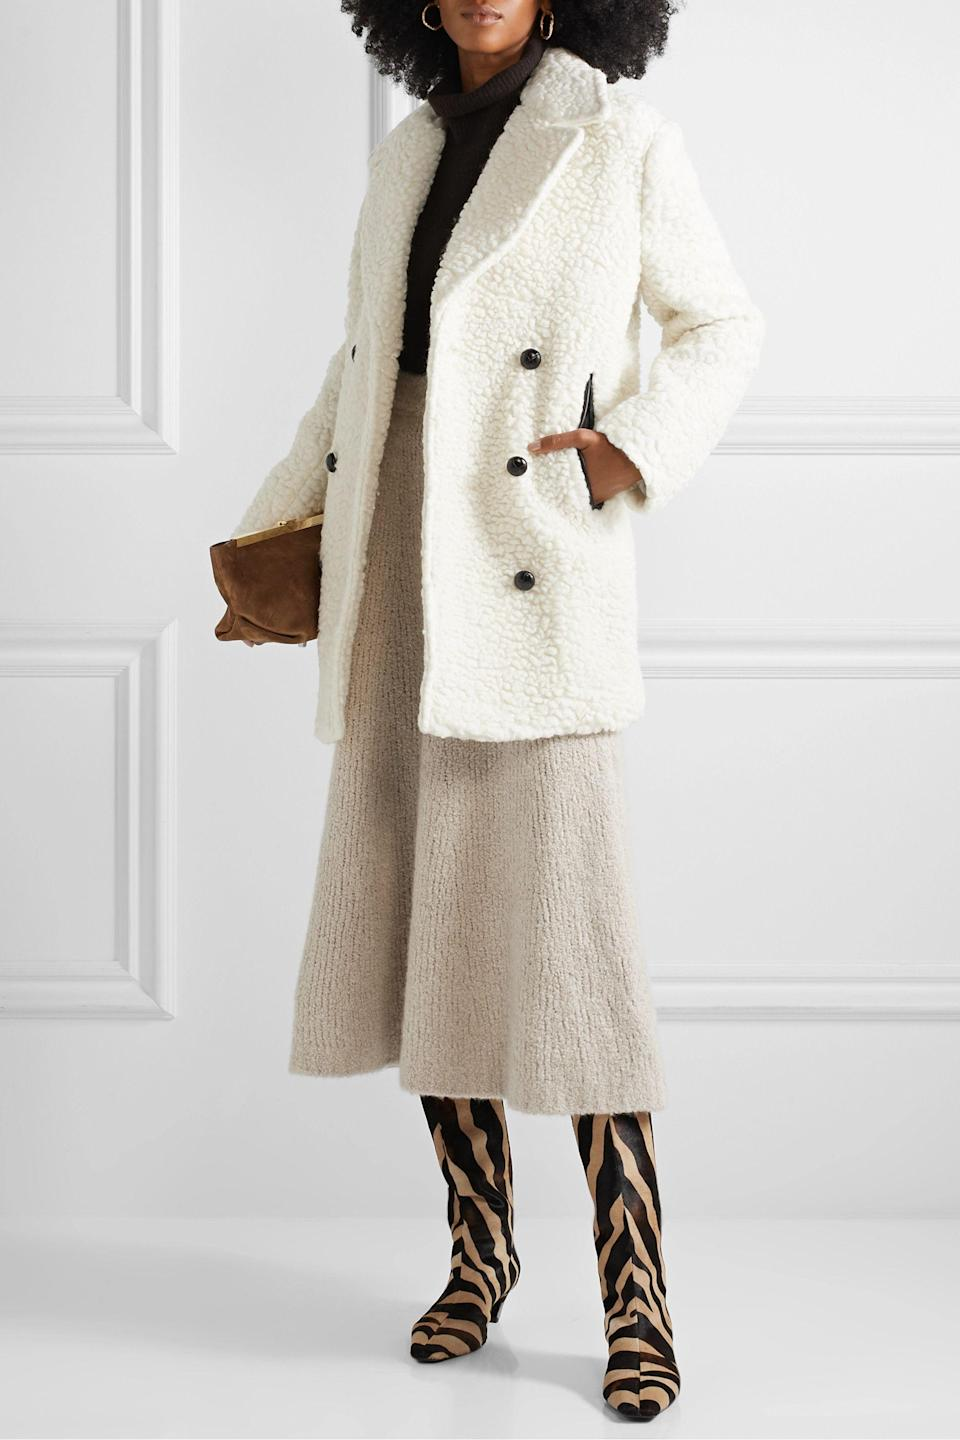 """<p><strong>BY MALENE BIRGER</strong></p><p>net-a-porter.com</p><p><strong>$447.50</strong></p><p><a href=""""https://go.redirectingat.com?id=74968X1596630&url=https%3A%2F%2Fwww.net-a-porter.com%2Fen-us%2Fshop%2Fproduct%2Fby-malene-birger%2Fclothing%2Fshort%2Fdouble-breasted-textured-wool-blend-coat%2F17957409491089013&sref=https%3A%2F%2Fwww.cosmopolitan.com%2Fstyle-beauty%2Ffashion%2Fg36618322%2Fnet-a-porter-spring-sale-2021%2F"""" rel=""""nofollow noopener"""" target=""""_blank"""" data-ylk=""""slk:Shop Now"""" class=""""link rapid-noclick-resp"""">Shop Now</a></p><p>Shopping hack for ya: Buy your winter coats in the summertime because they're, like, superrrr discounted. Snag this white beaut that'll match allll the 'fits.</p>"""